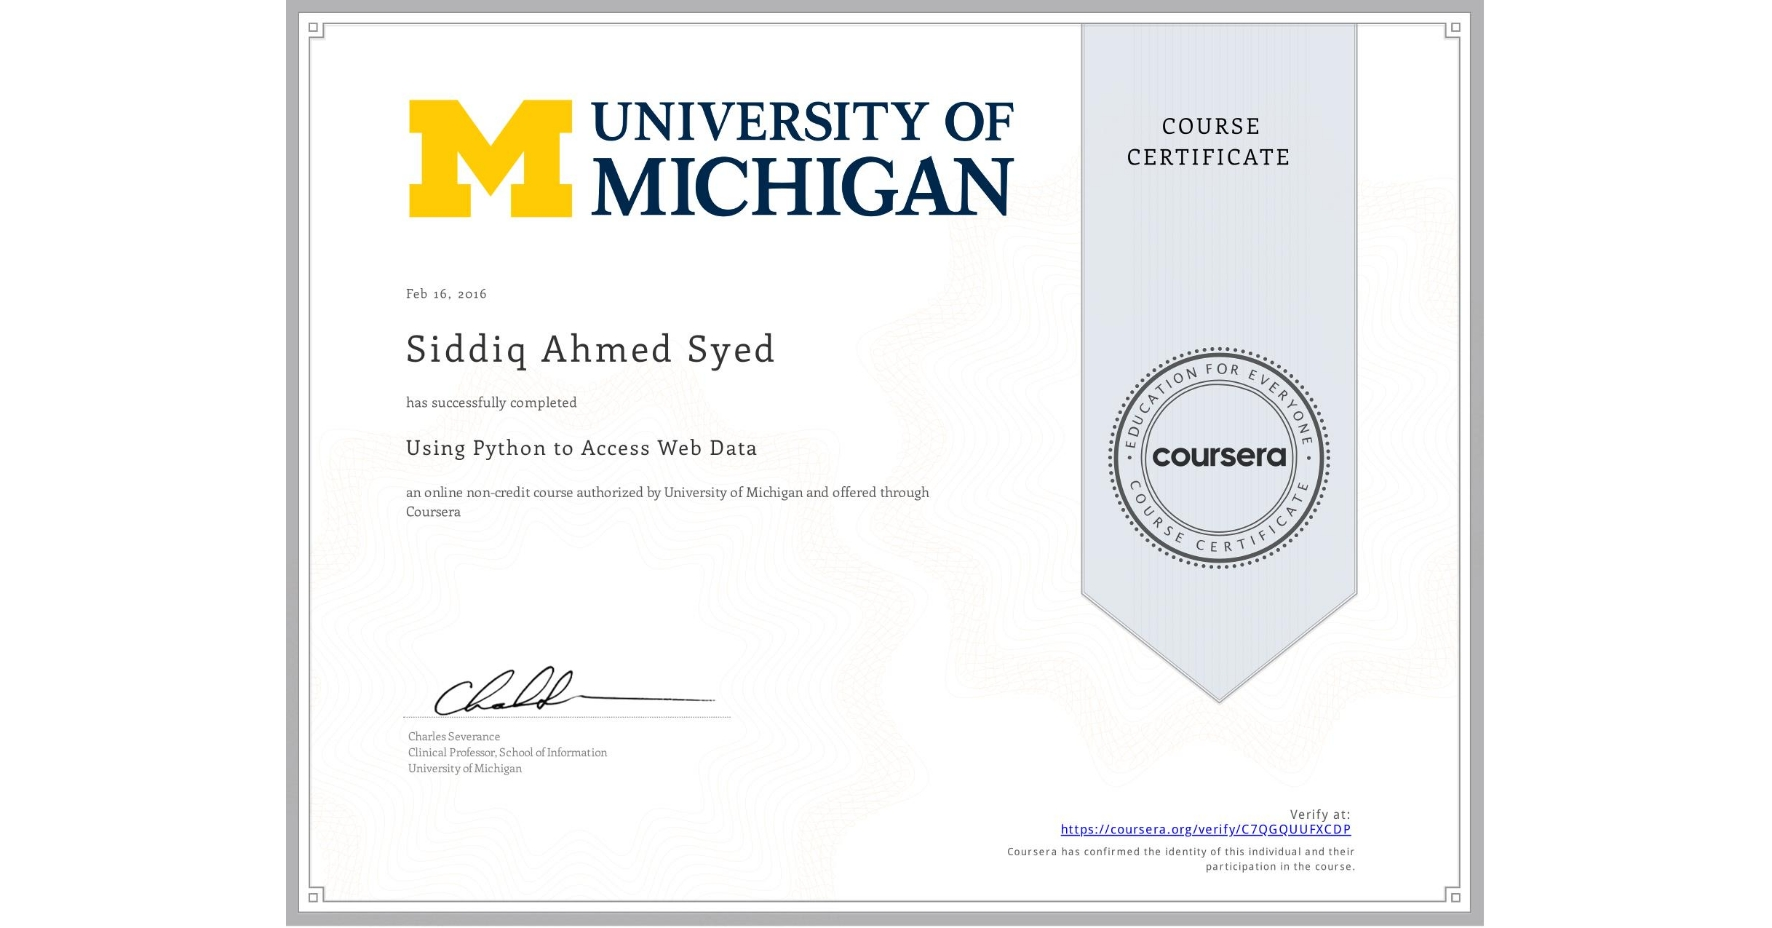 View certificate for Siddiq Ahmed   Syed, Using Python to Access Web Data, an online non-credit course authorized by University of Michigan and offered through Coursera